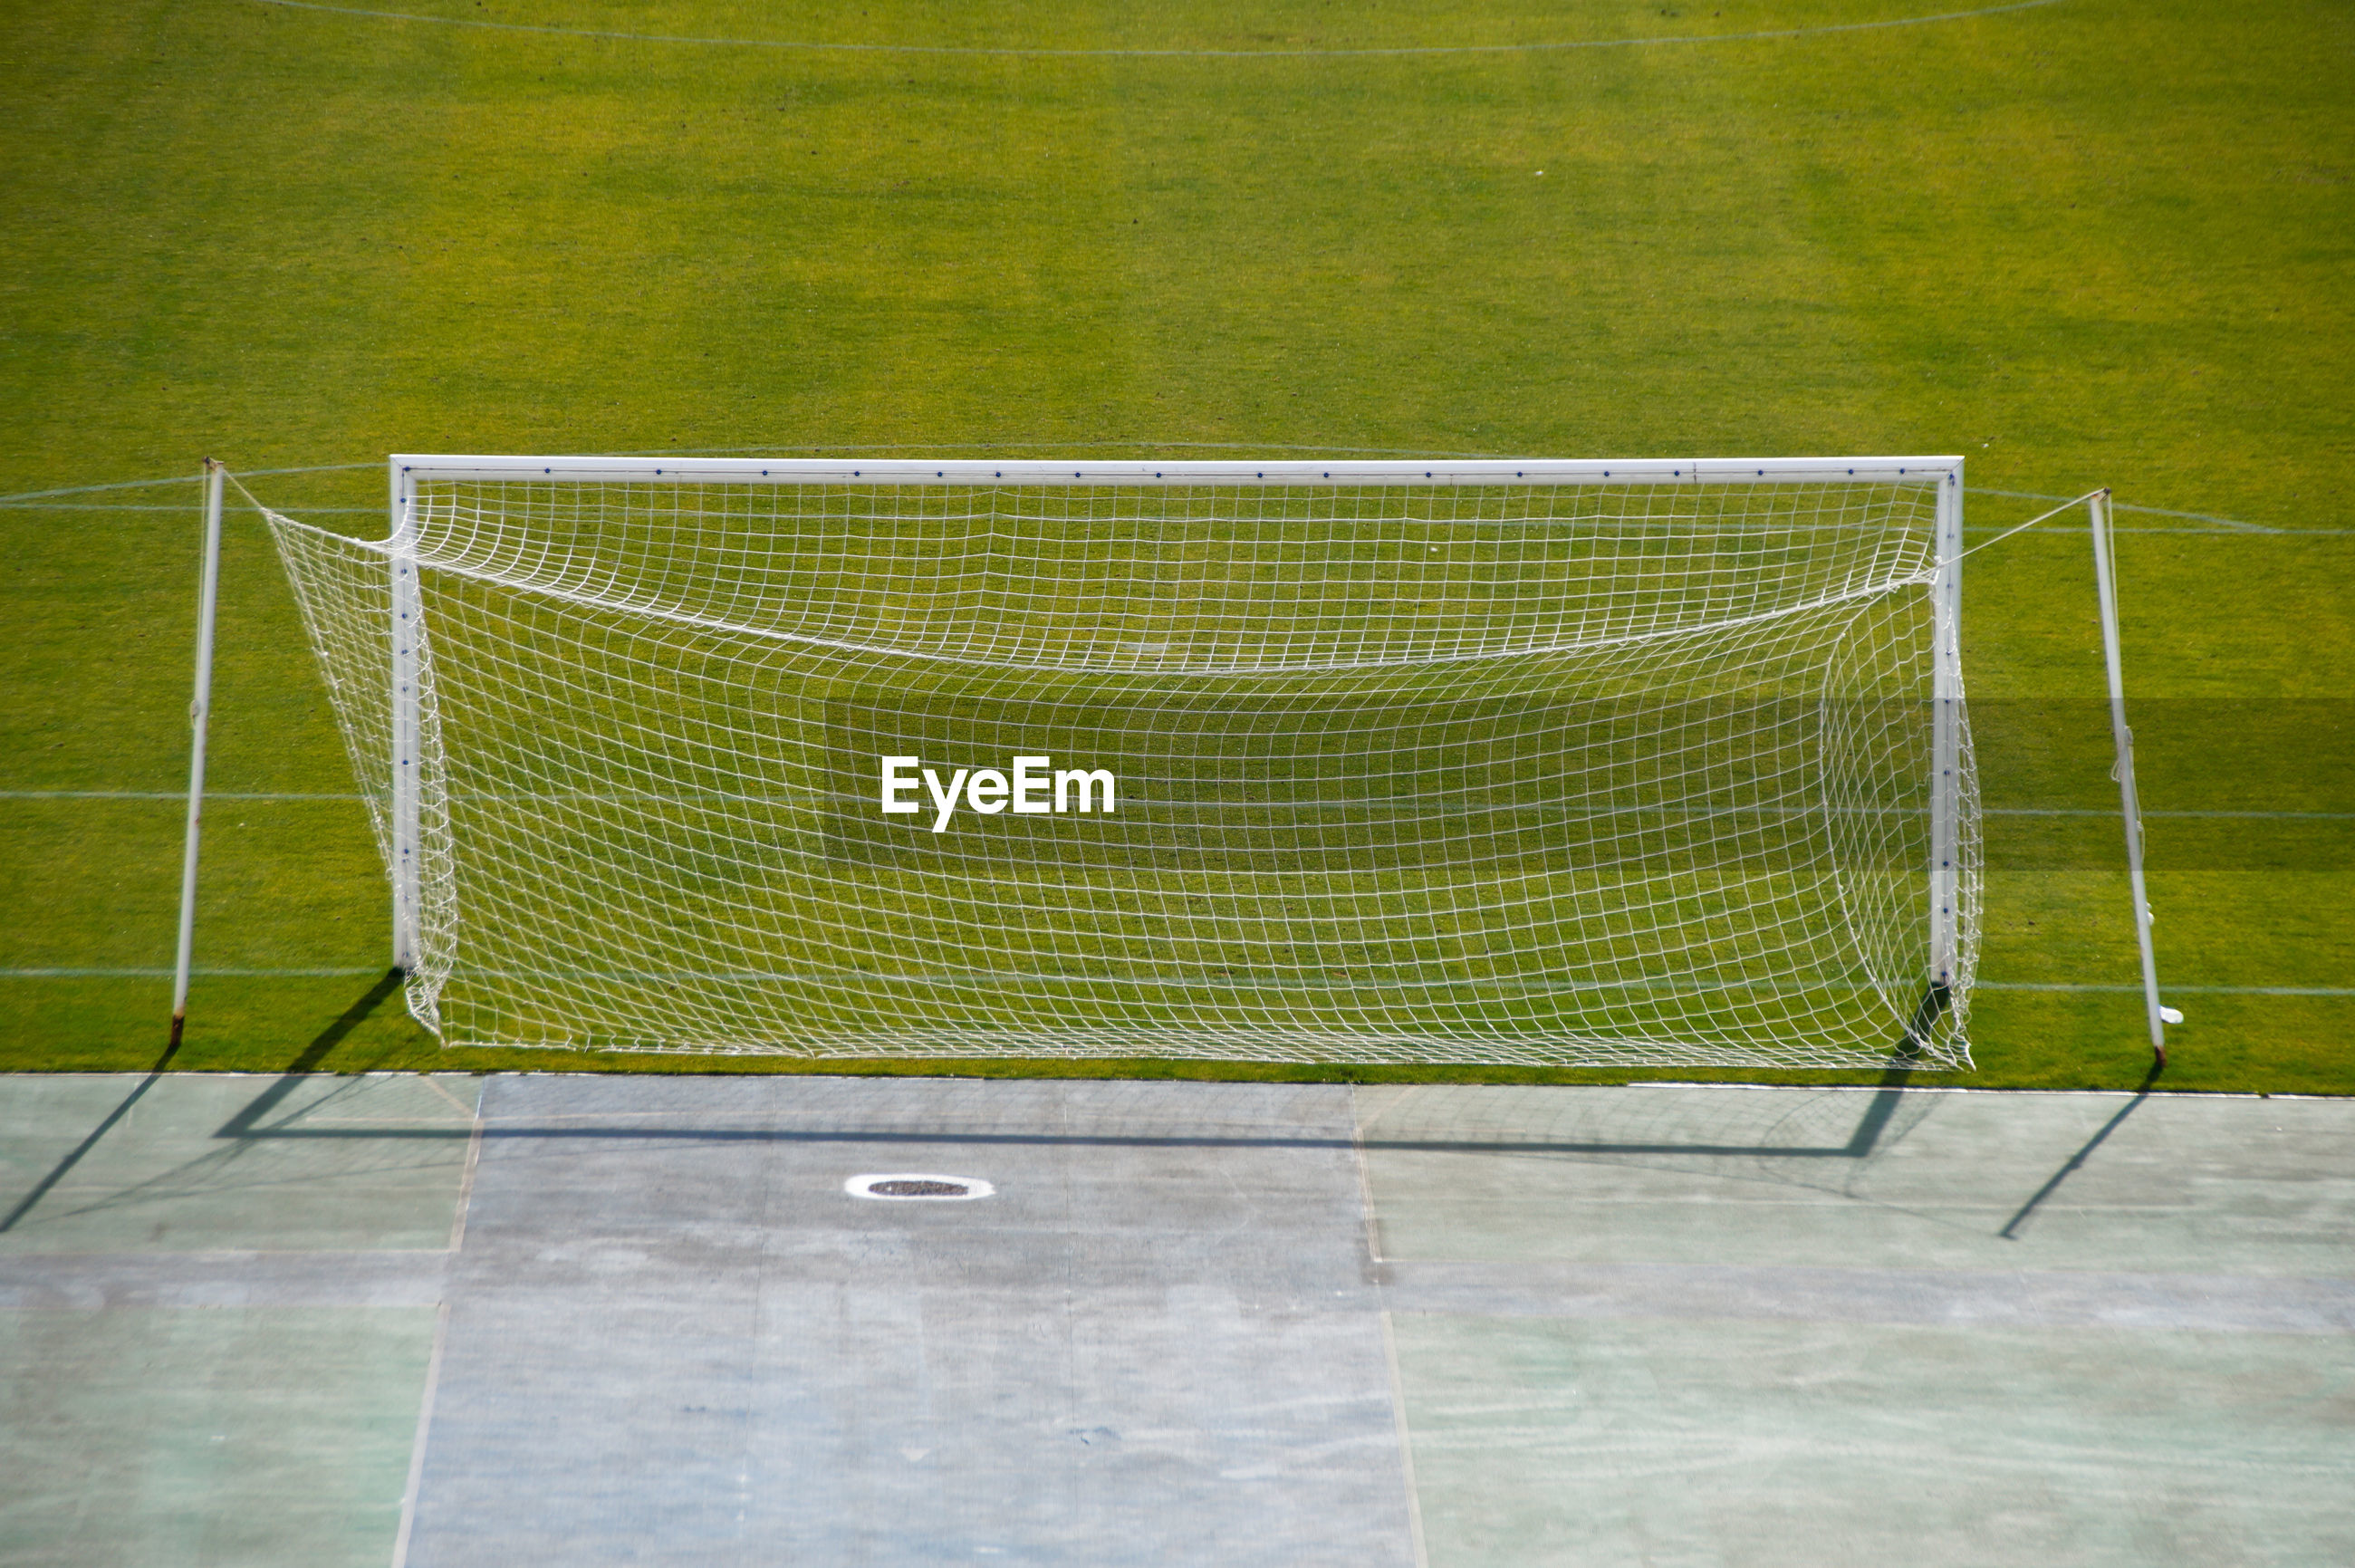 High angle view of goal post on field